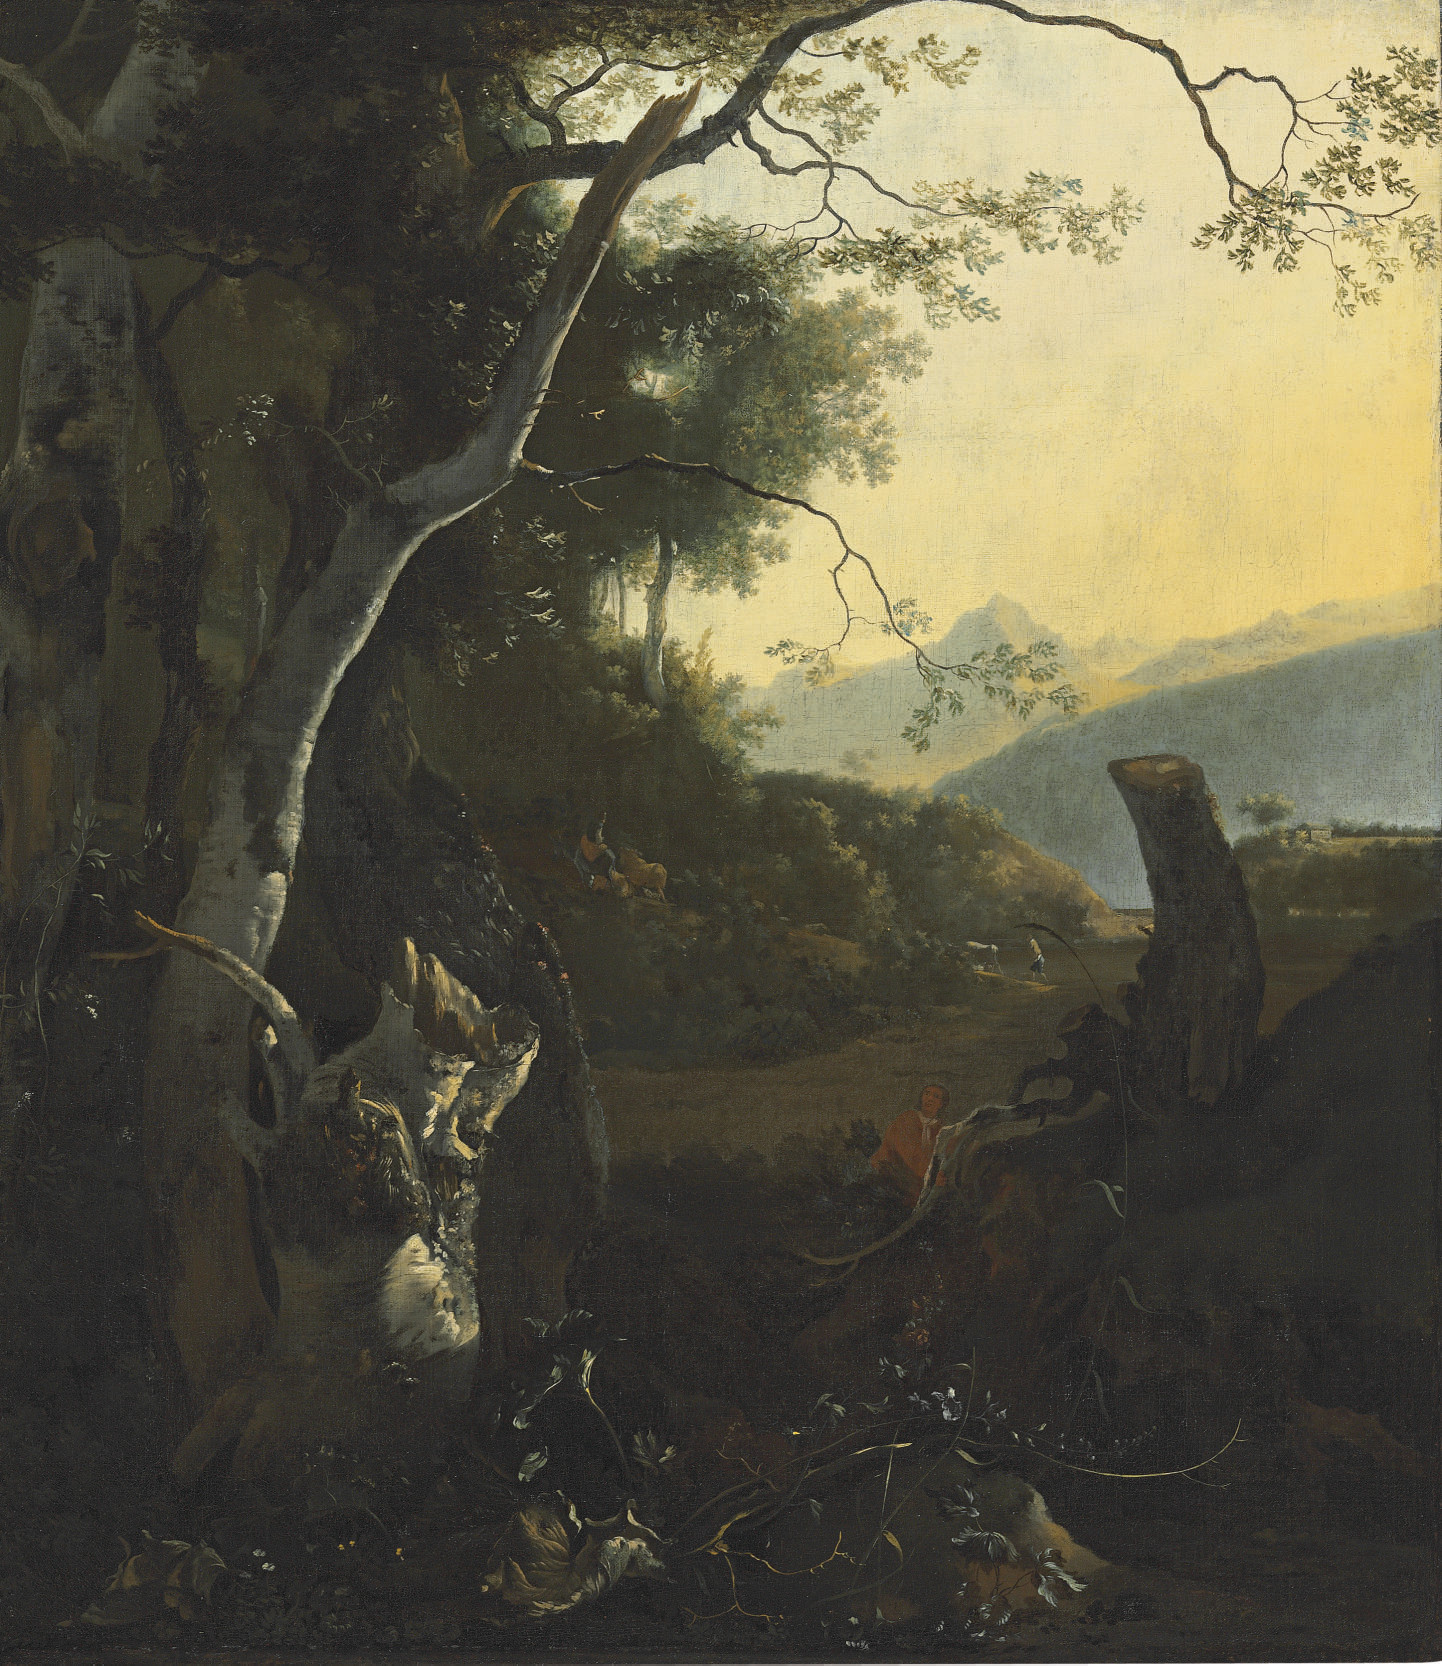 Travelers in a wooded landscape